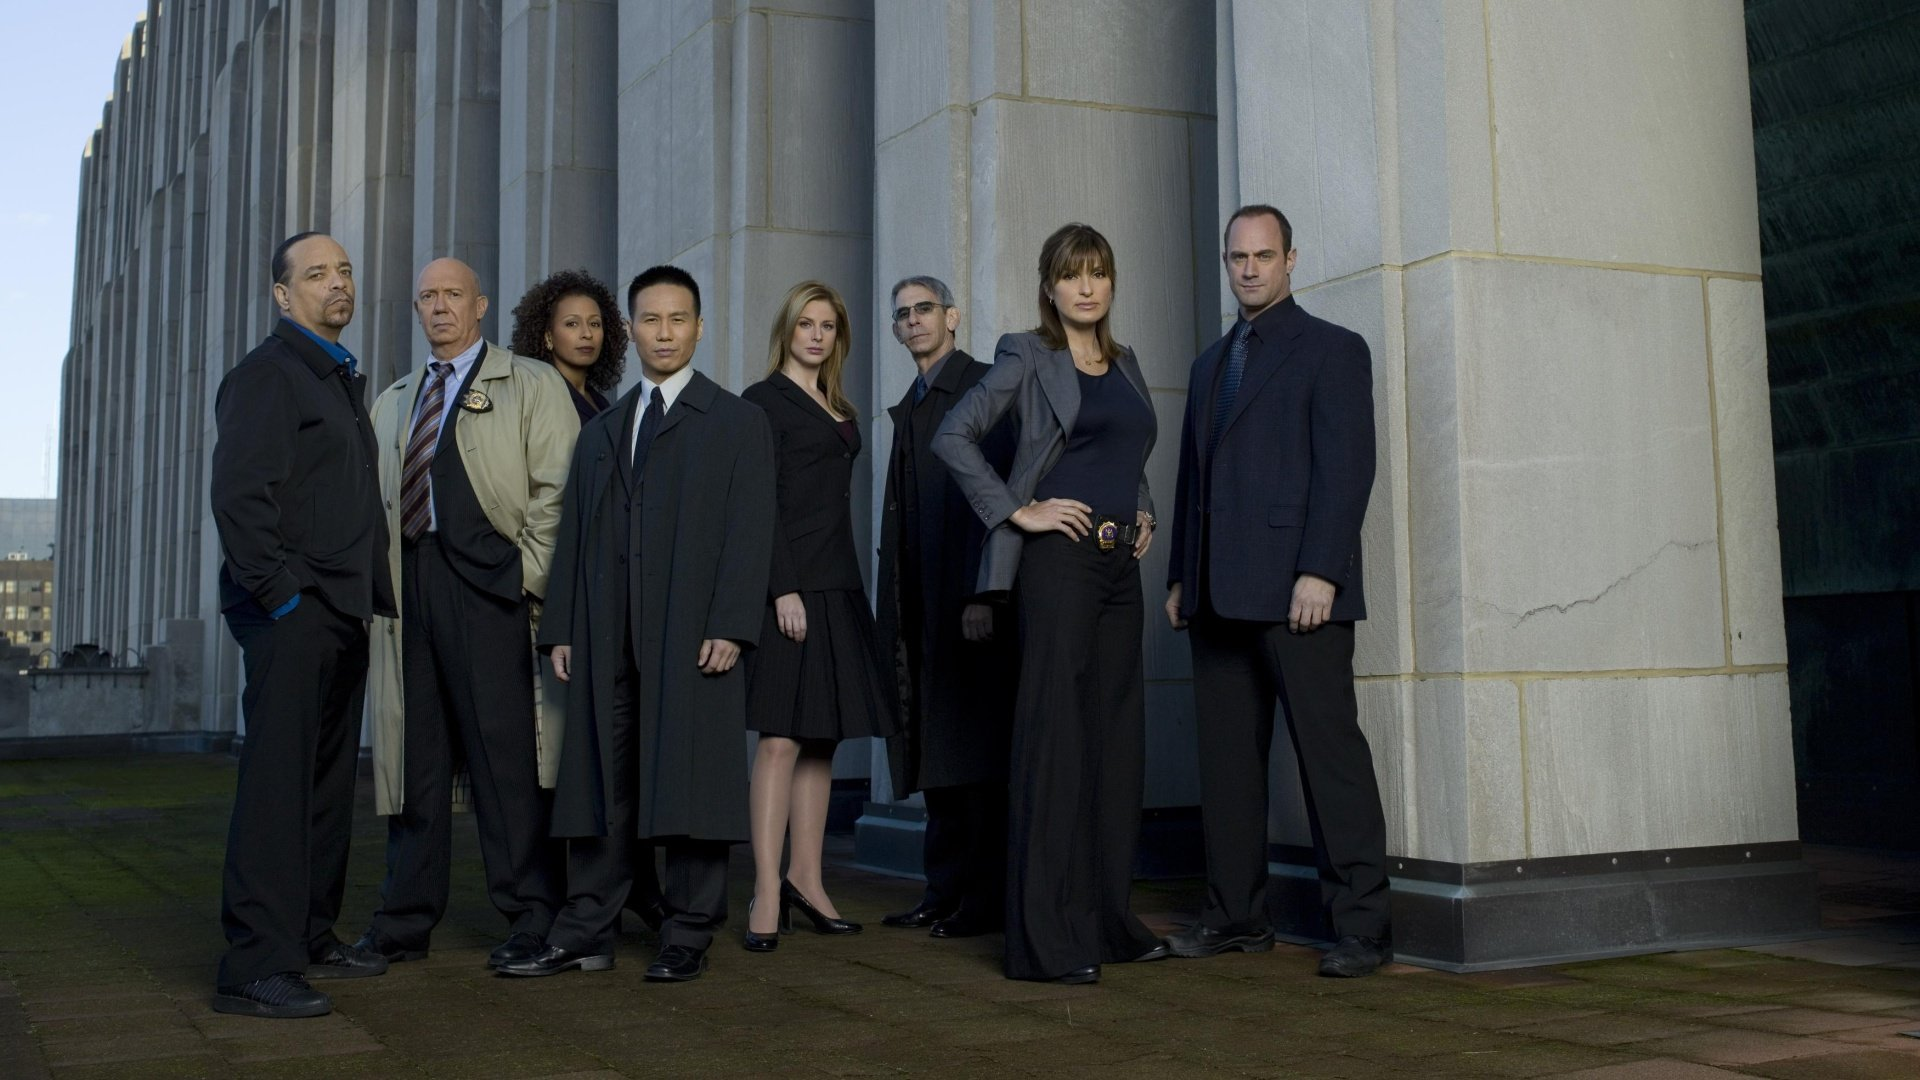 Law Order Special Victims Unit Fondo De Pantalla Hd